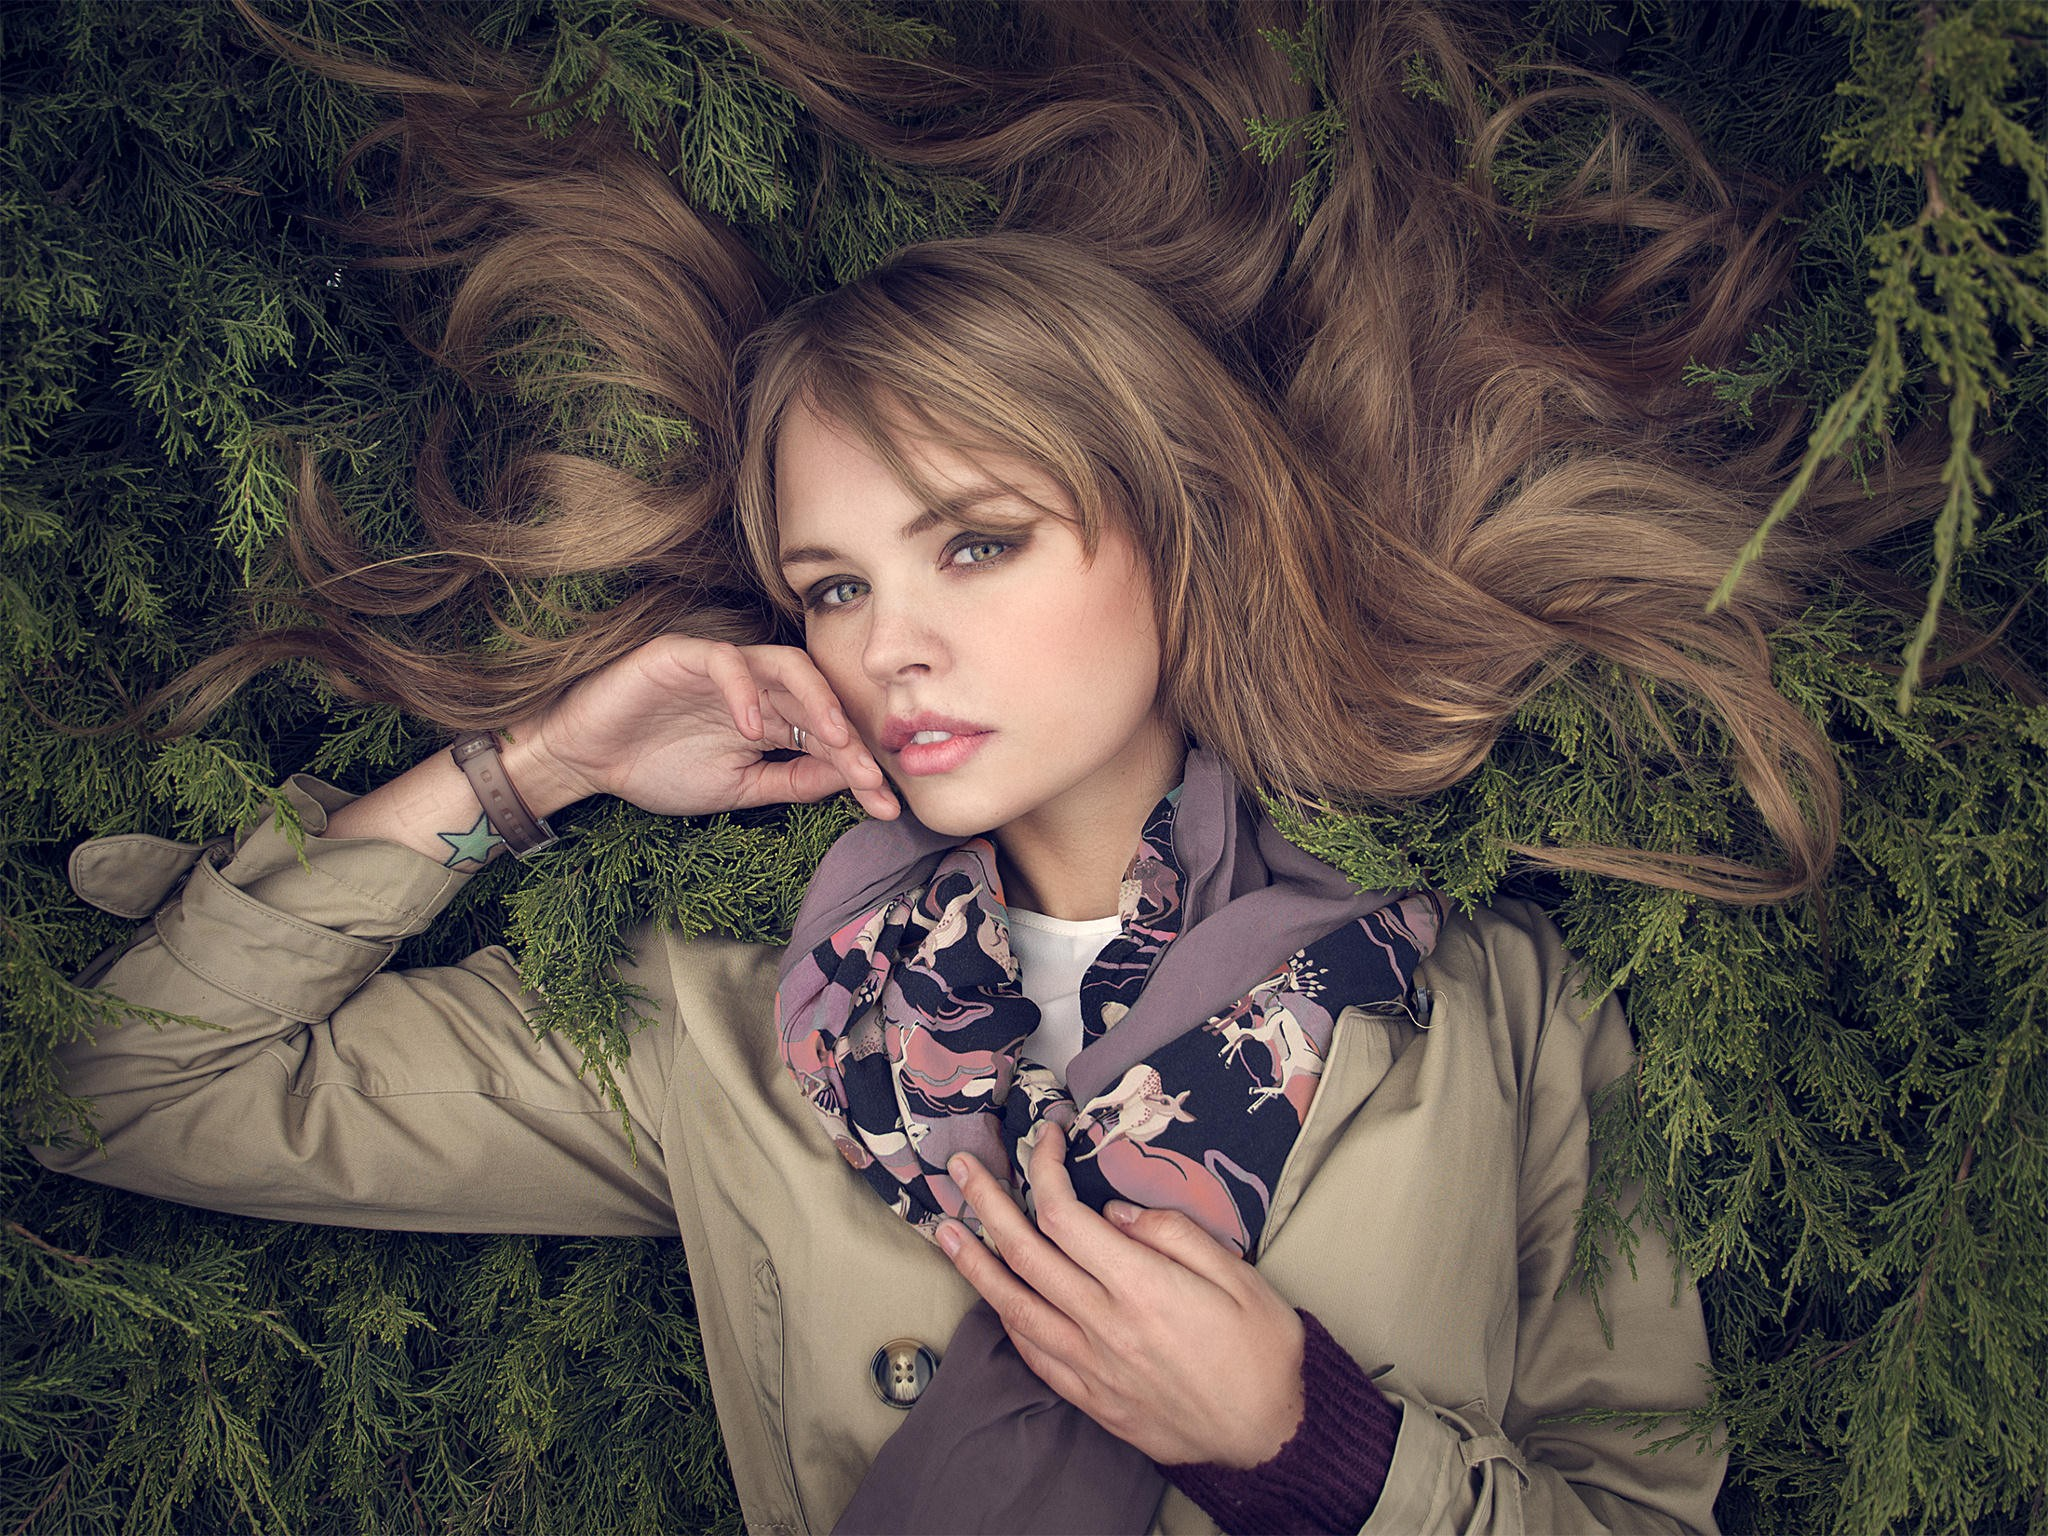 People 2048x1536 Anastasia Scheglova women model face portrait hair spread out trench coat coats touching face makeup scarf looking at viewer lying on back lying down Russian women Russian model parted lips